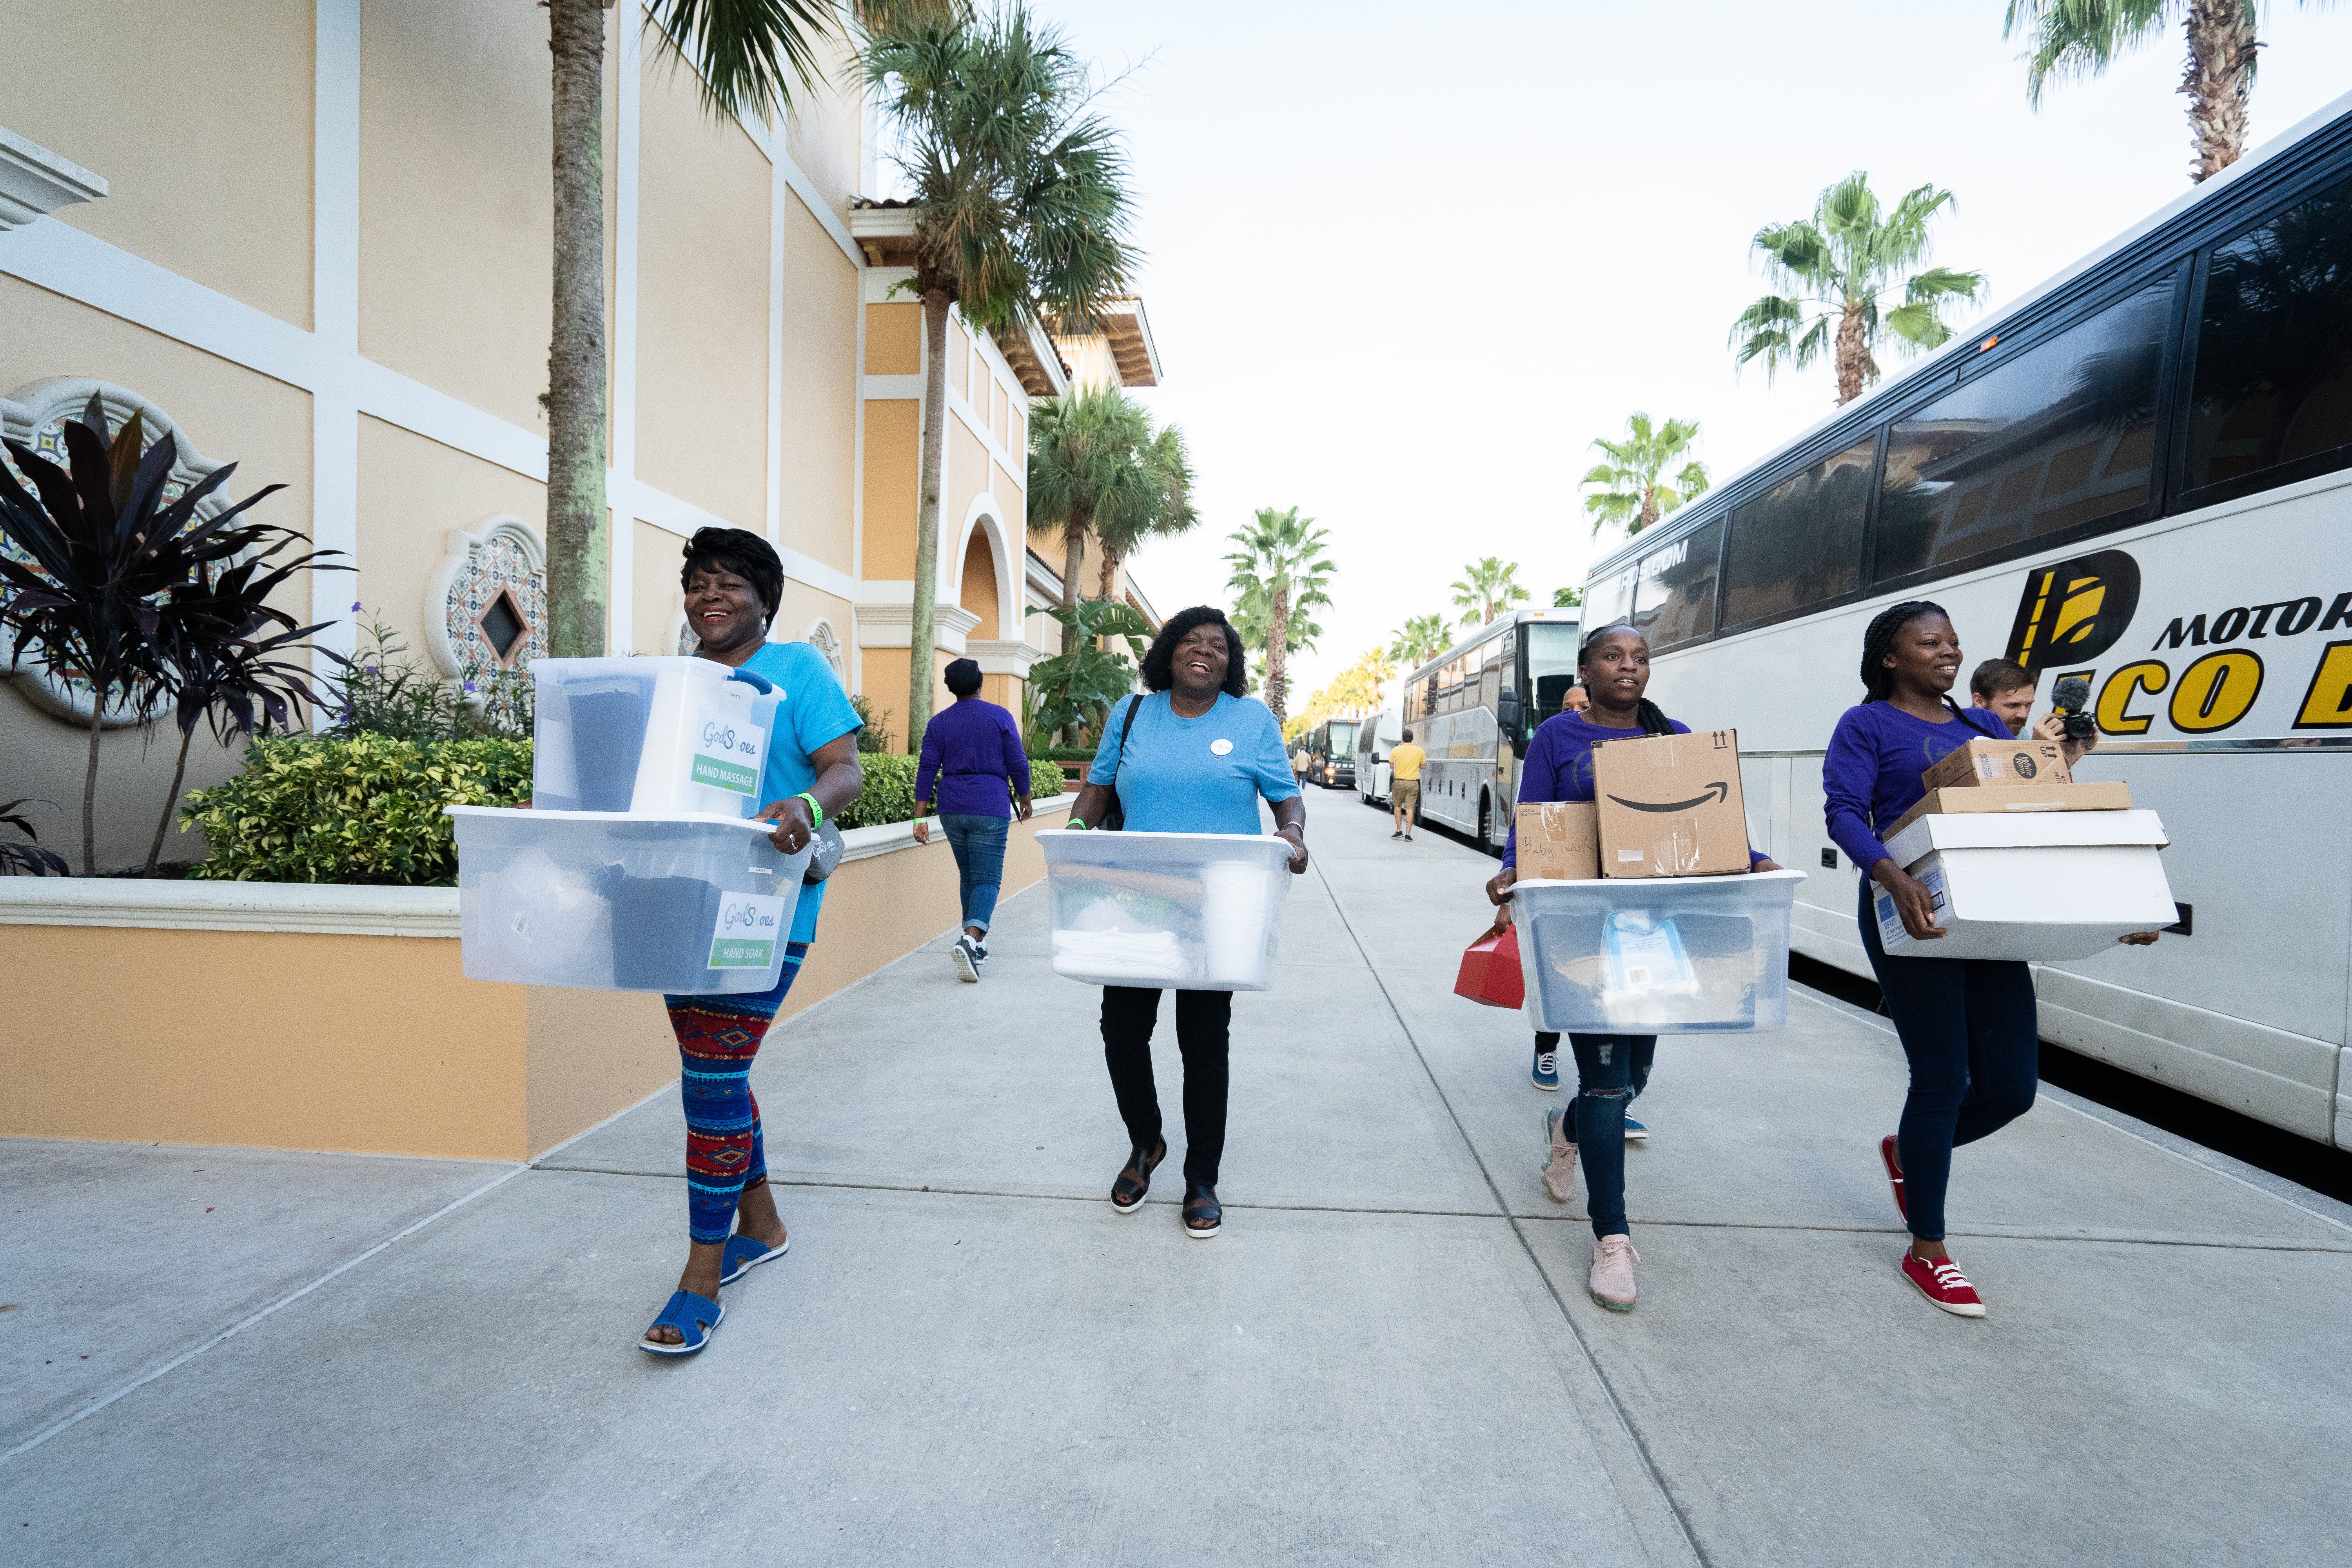 Four women carry supplies to be loaded onto a bus and donated during God in Shoes community service day.